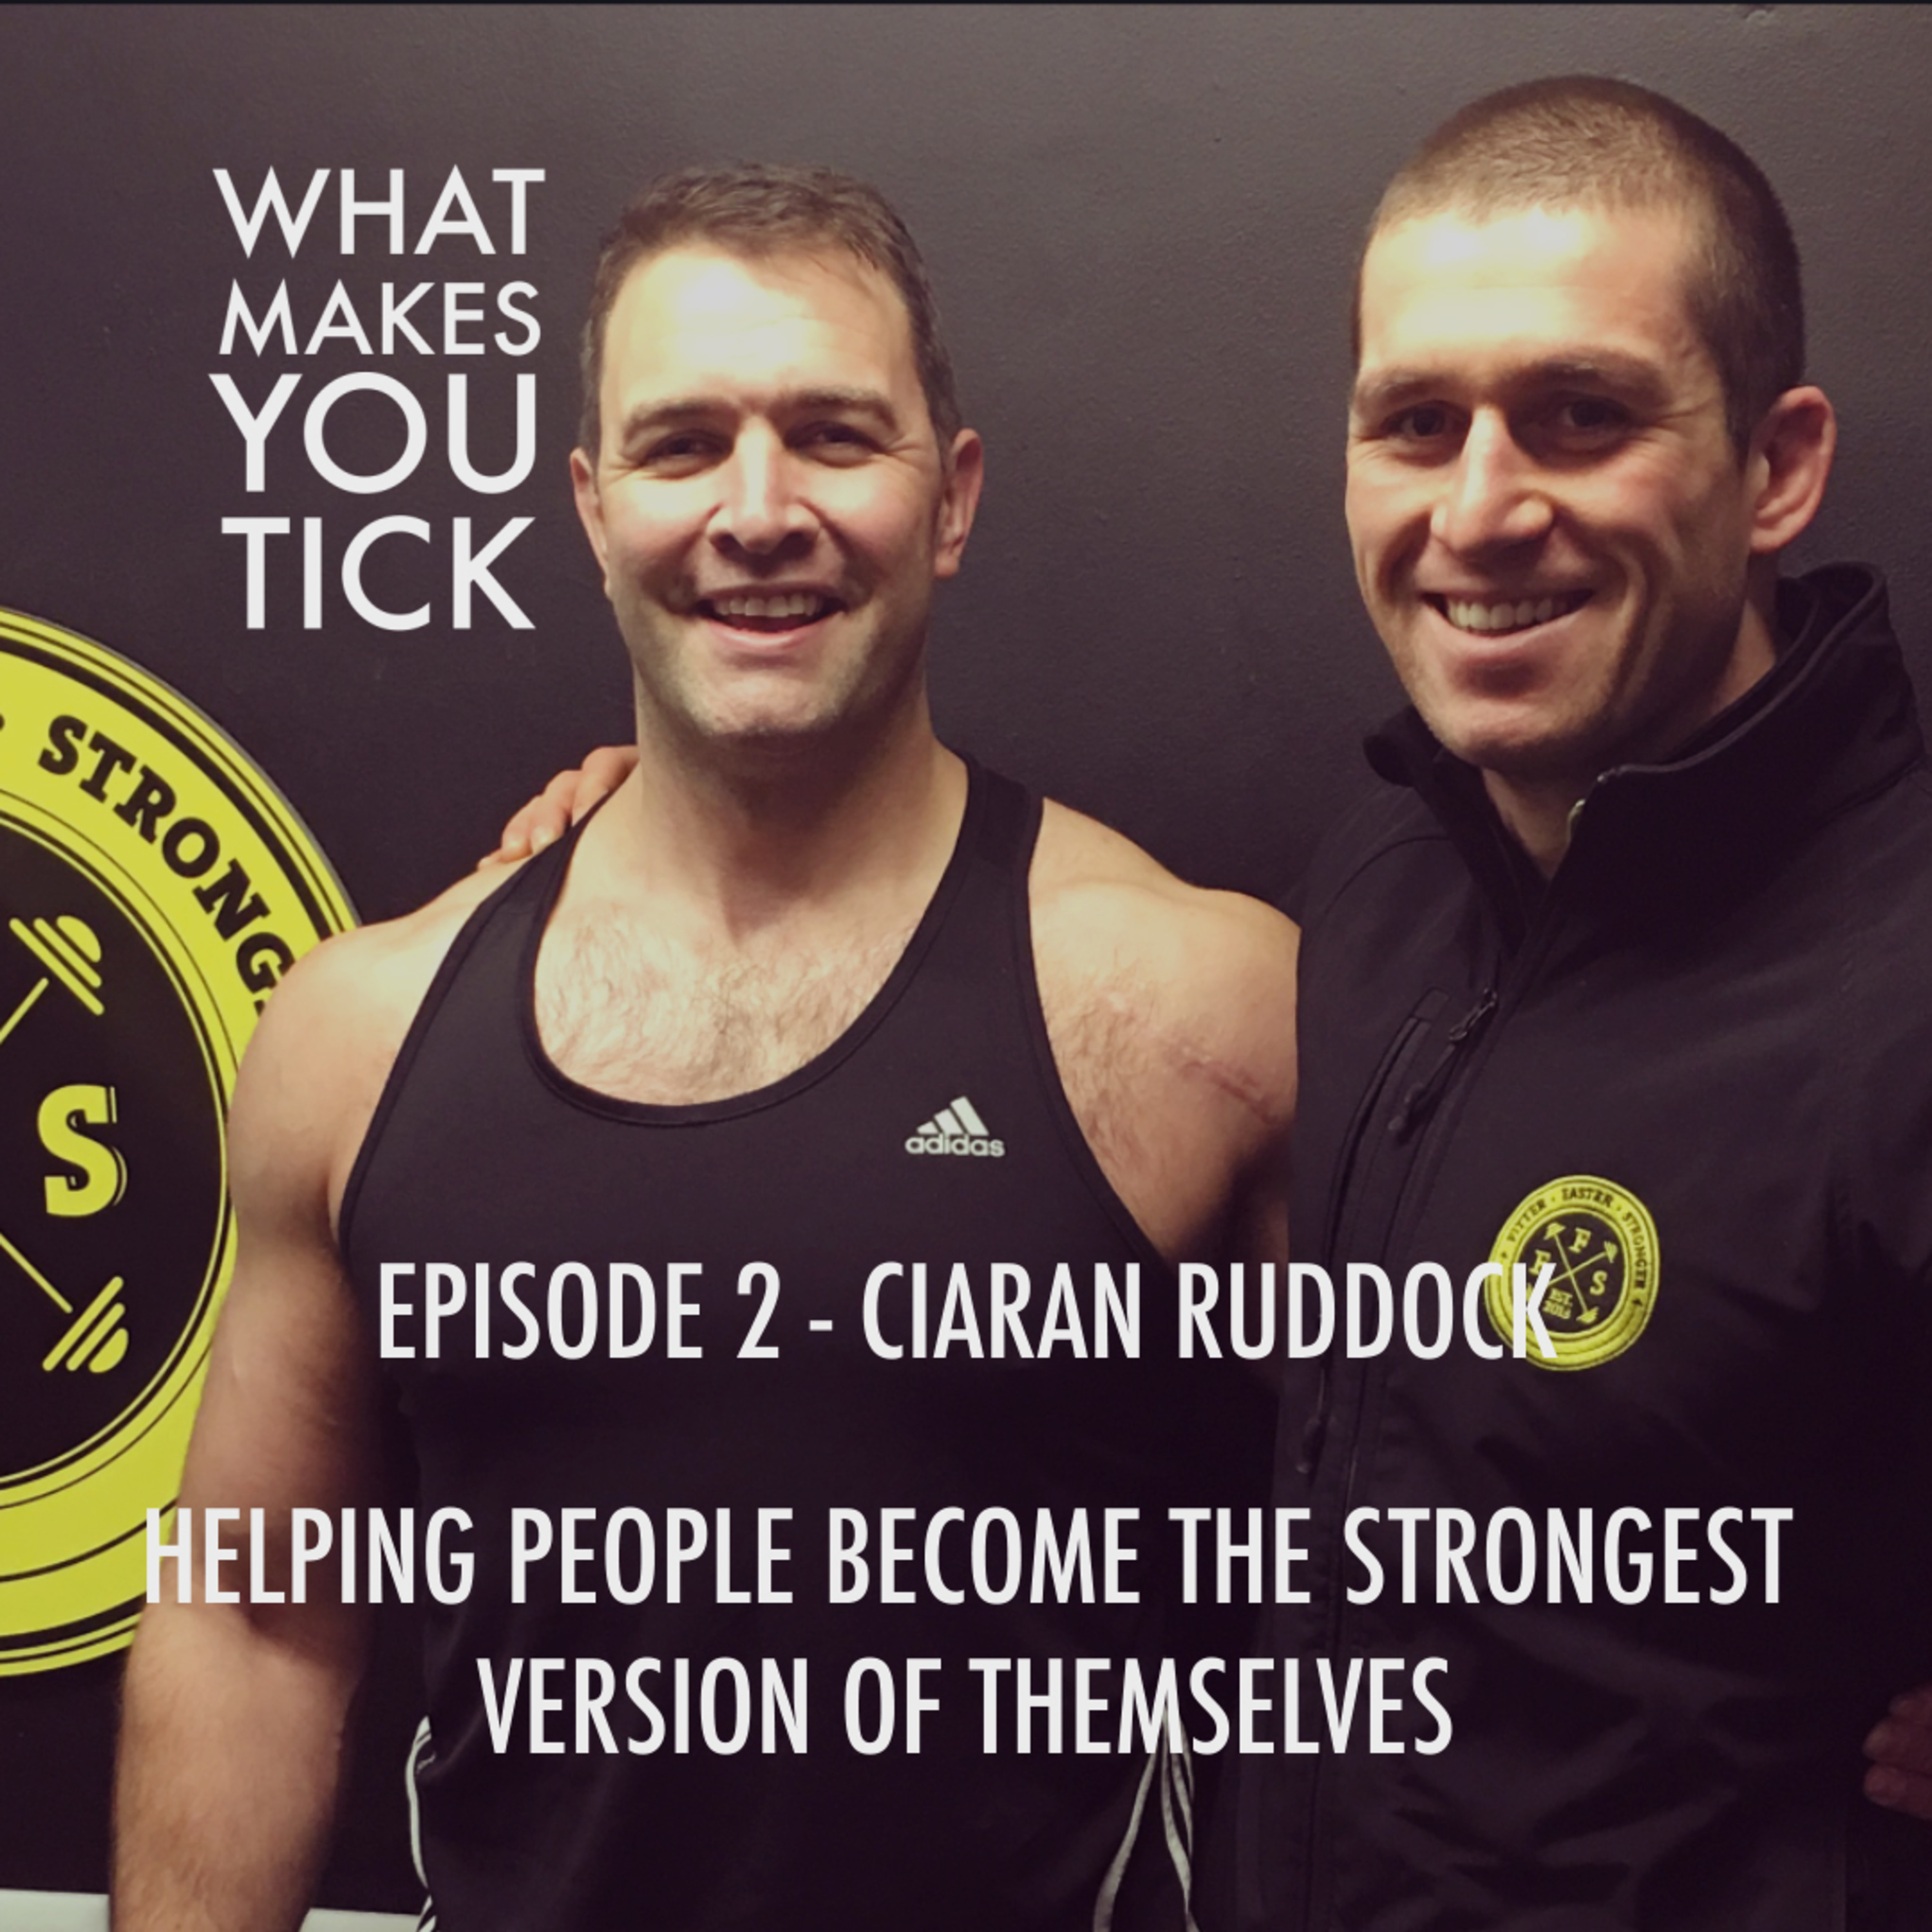 Episode 2 - Helping people become the strongest versions of themselves